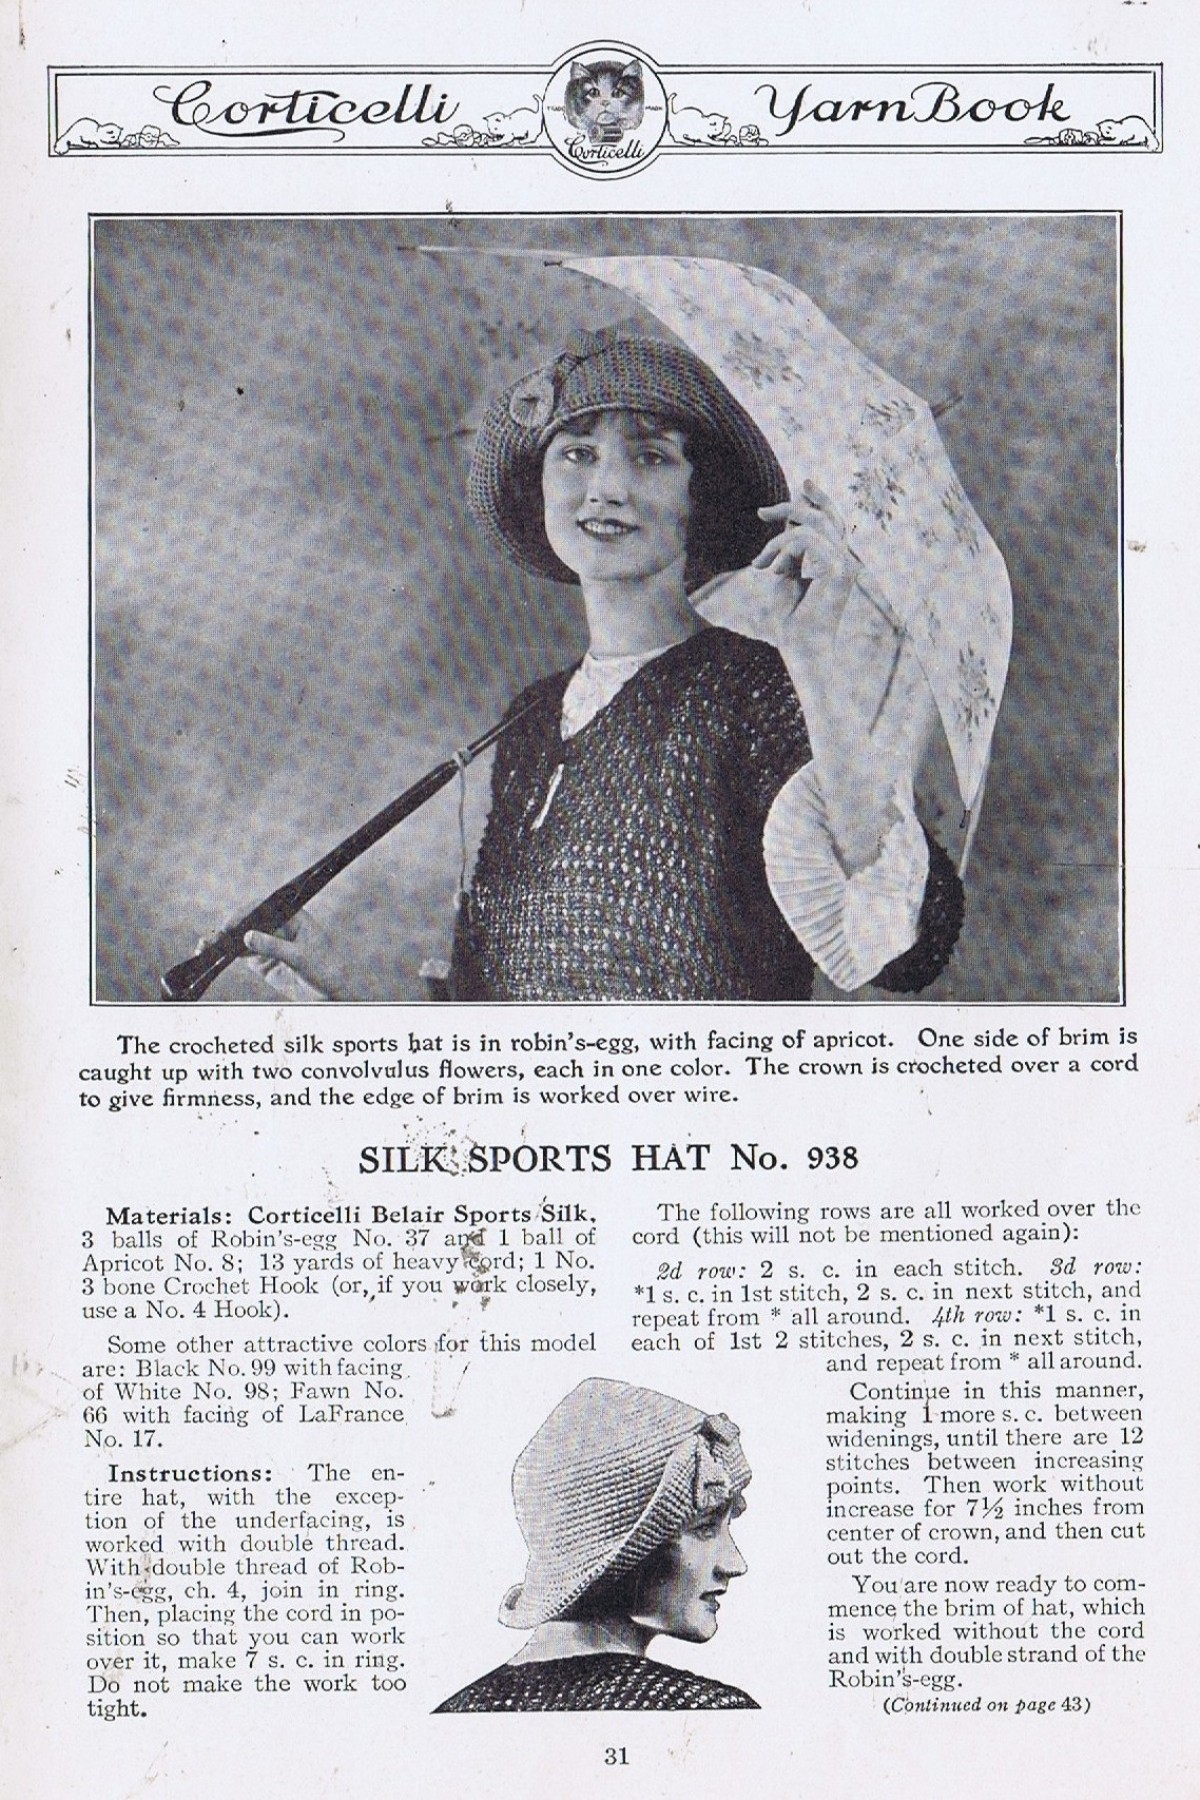 Vintage Knitting Patterns 1920s : FREE Vintage 1920s Knitting and Crochet Pattern Book - Vintage Patterns Dazes...